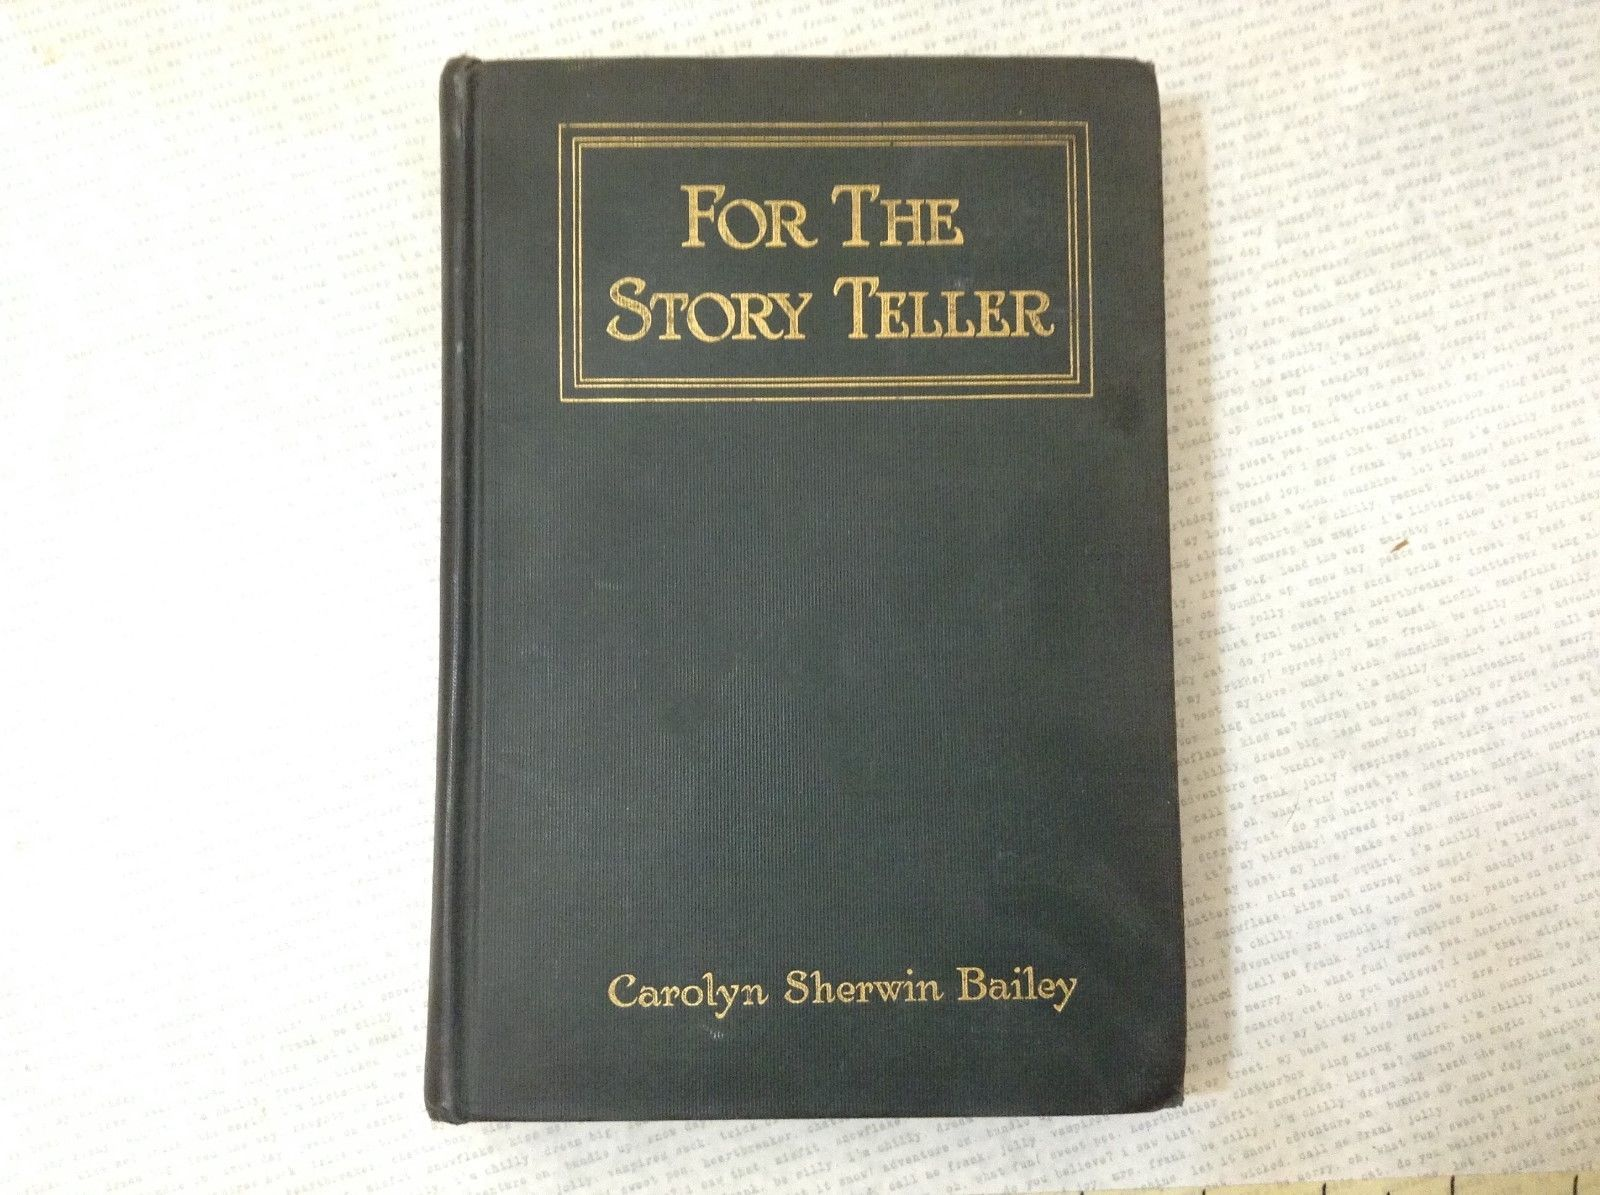 For the Story Teller by Carolyn Sherwin Bailey Antique Hardcover